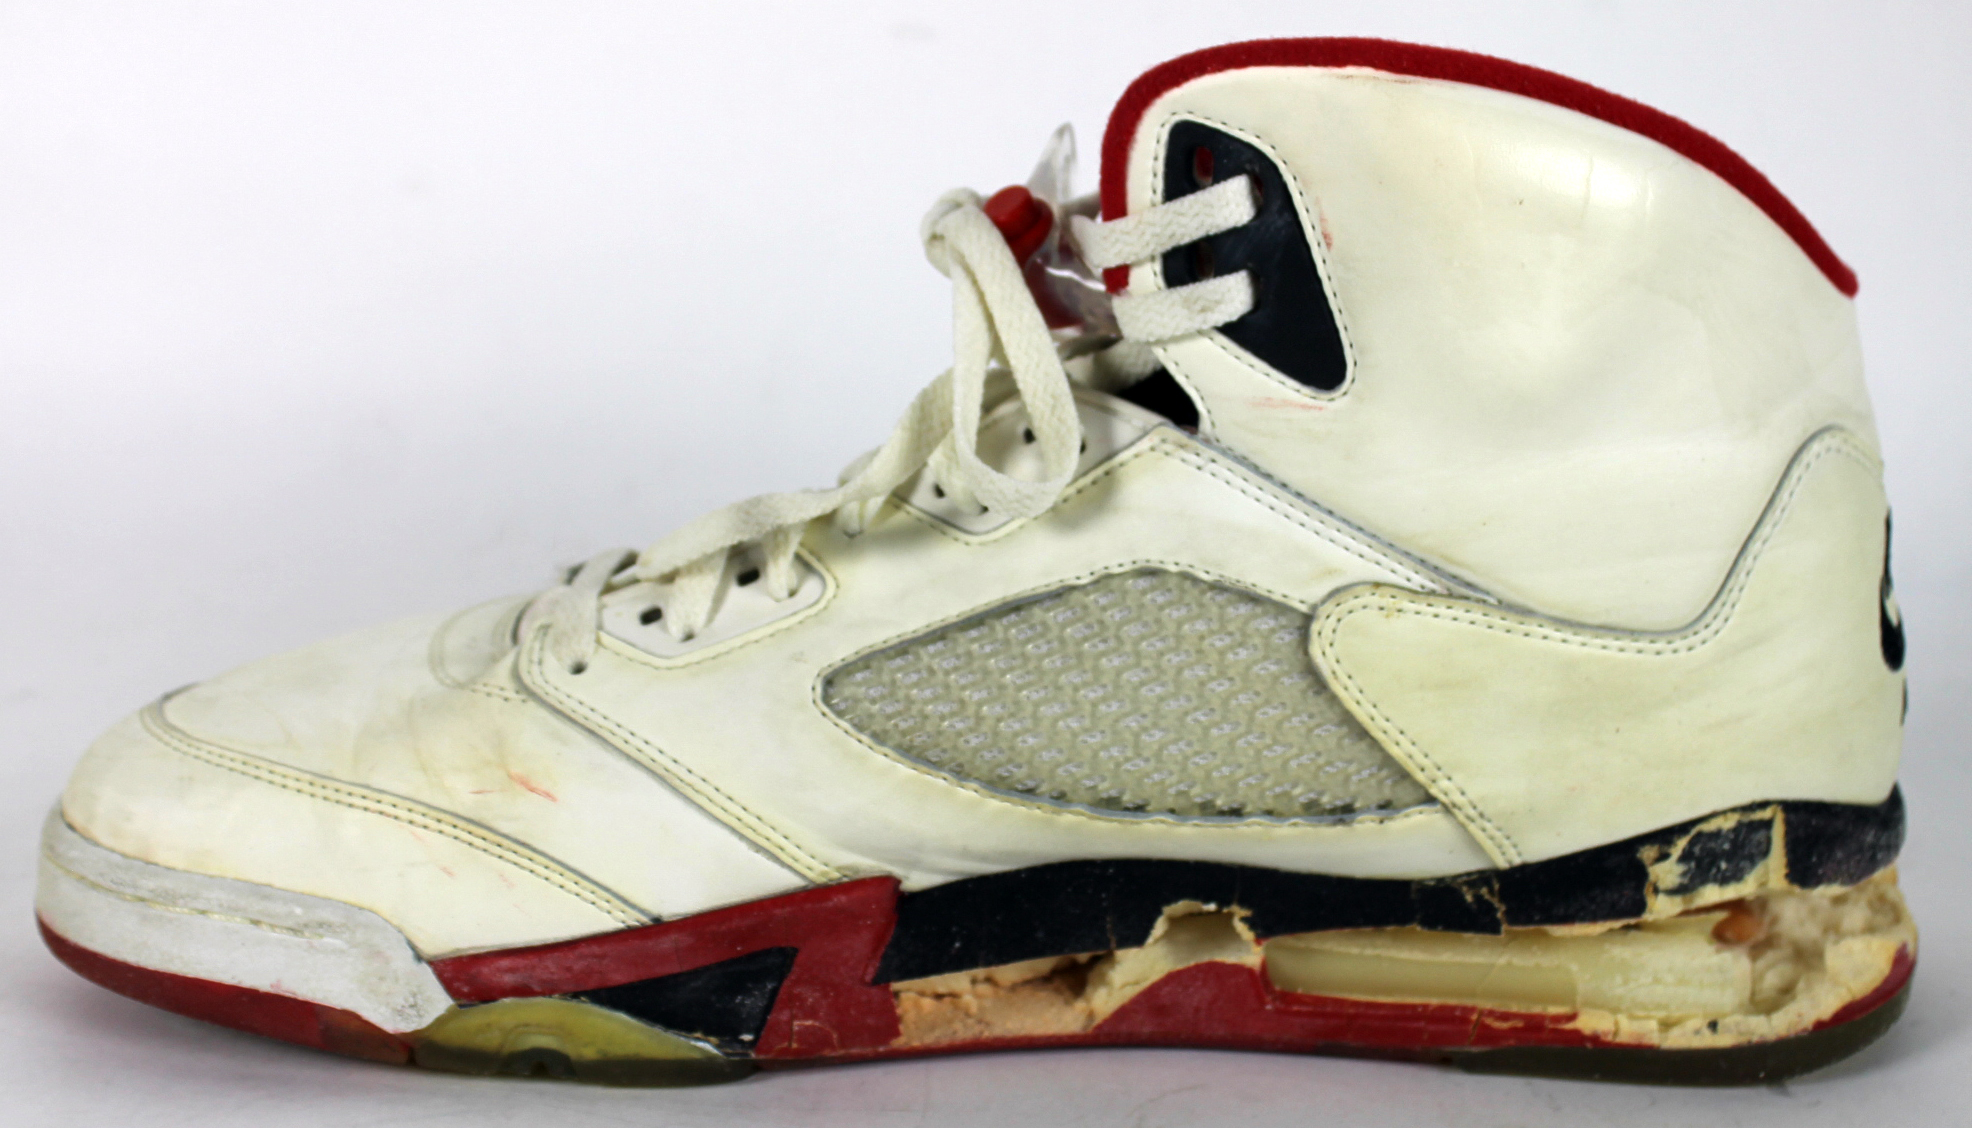 reputable site b50b6 dffd0 used retro jordan sneakers for sale on ebay